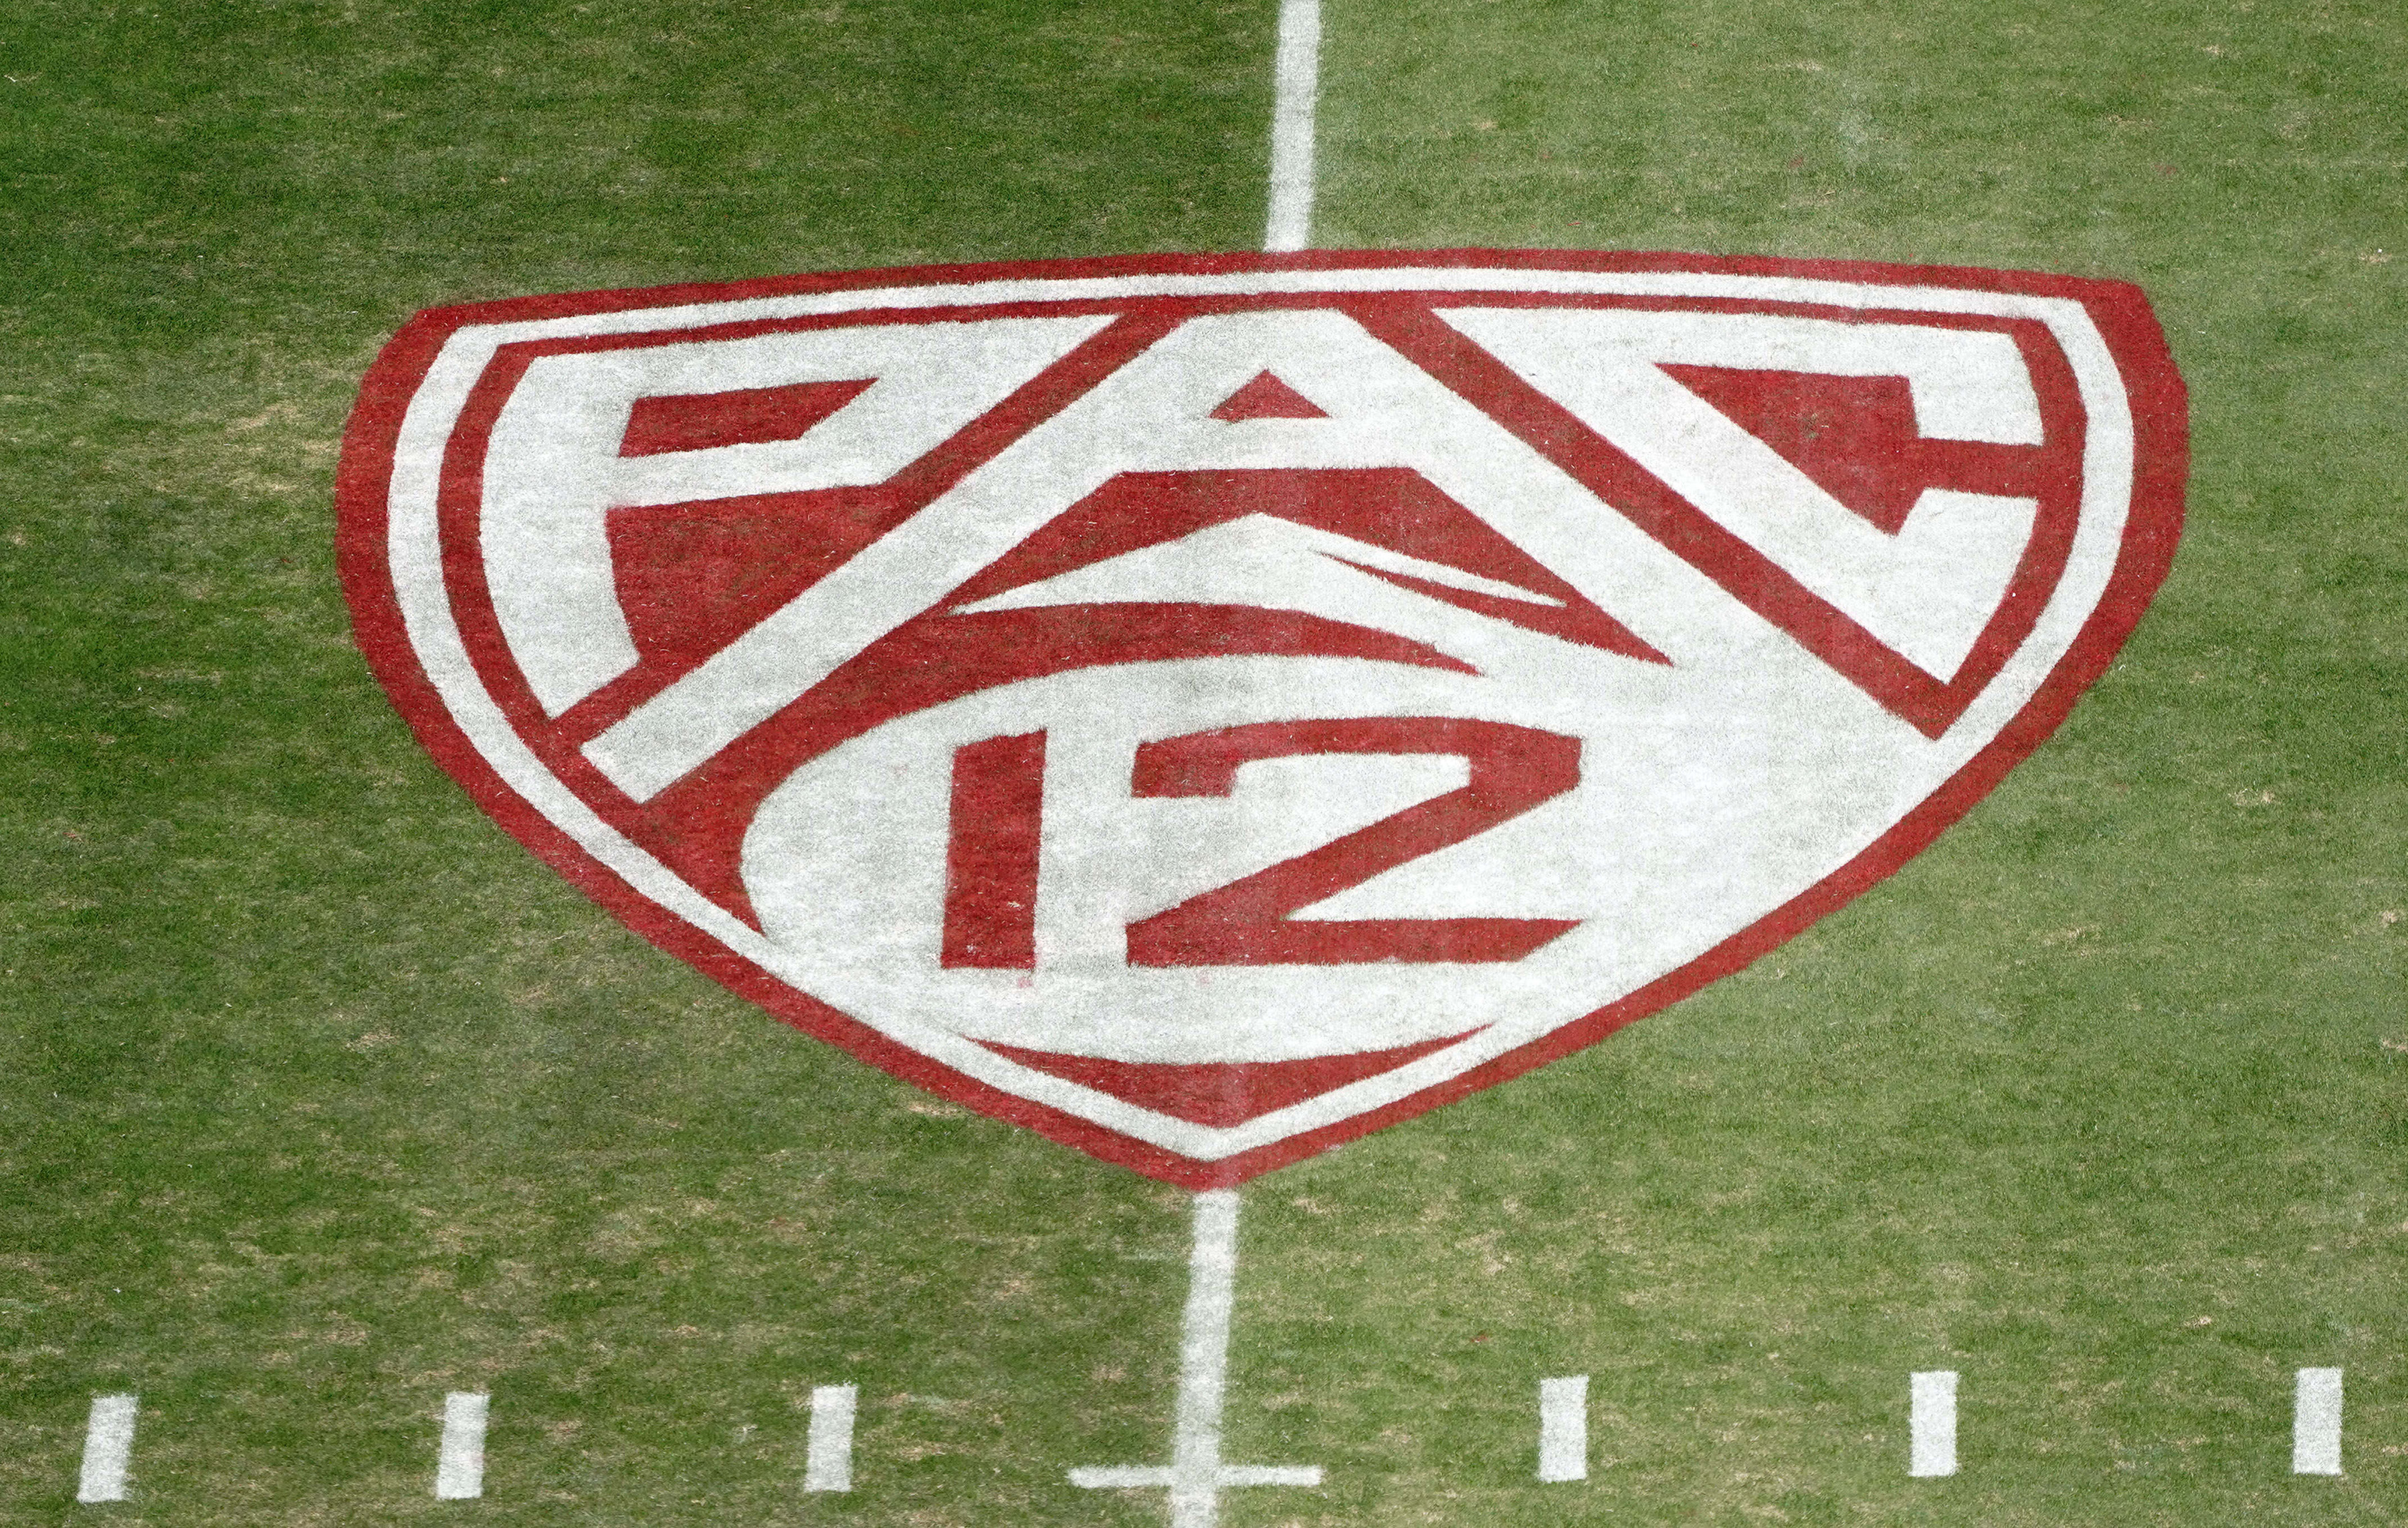 pac12-football-covid-forfeit-cancellation-vaccinations-fisch-arizona-wildcats-2021-2022-policy